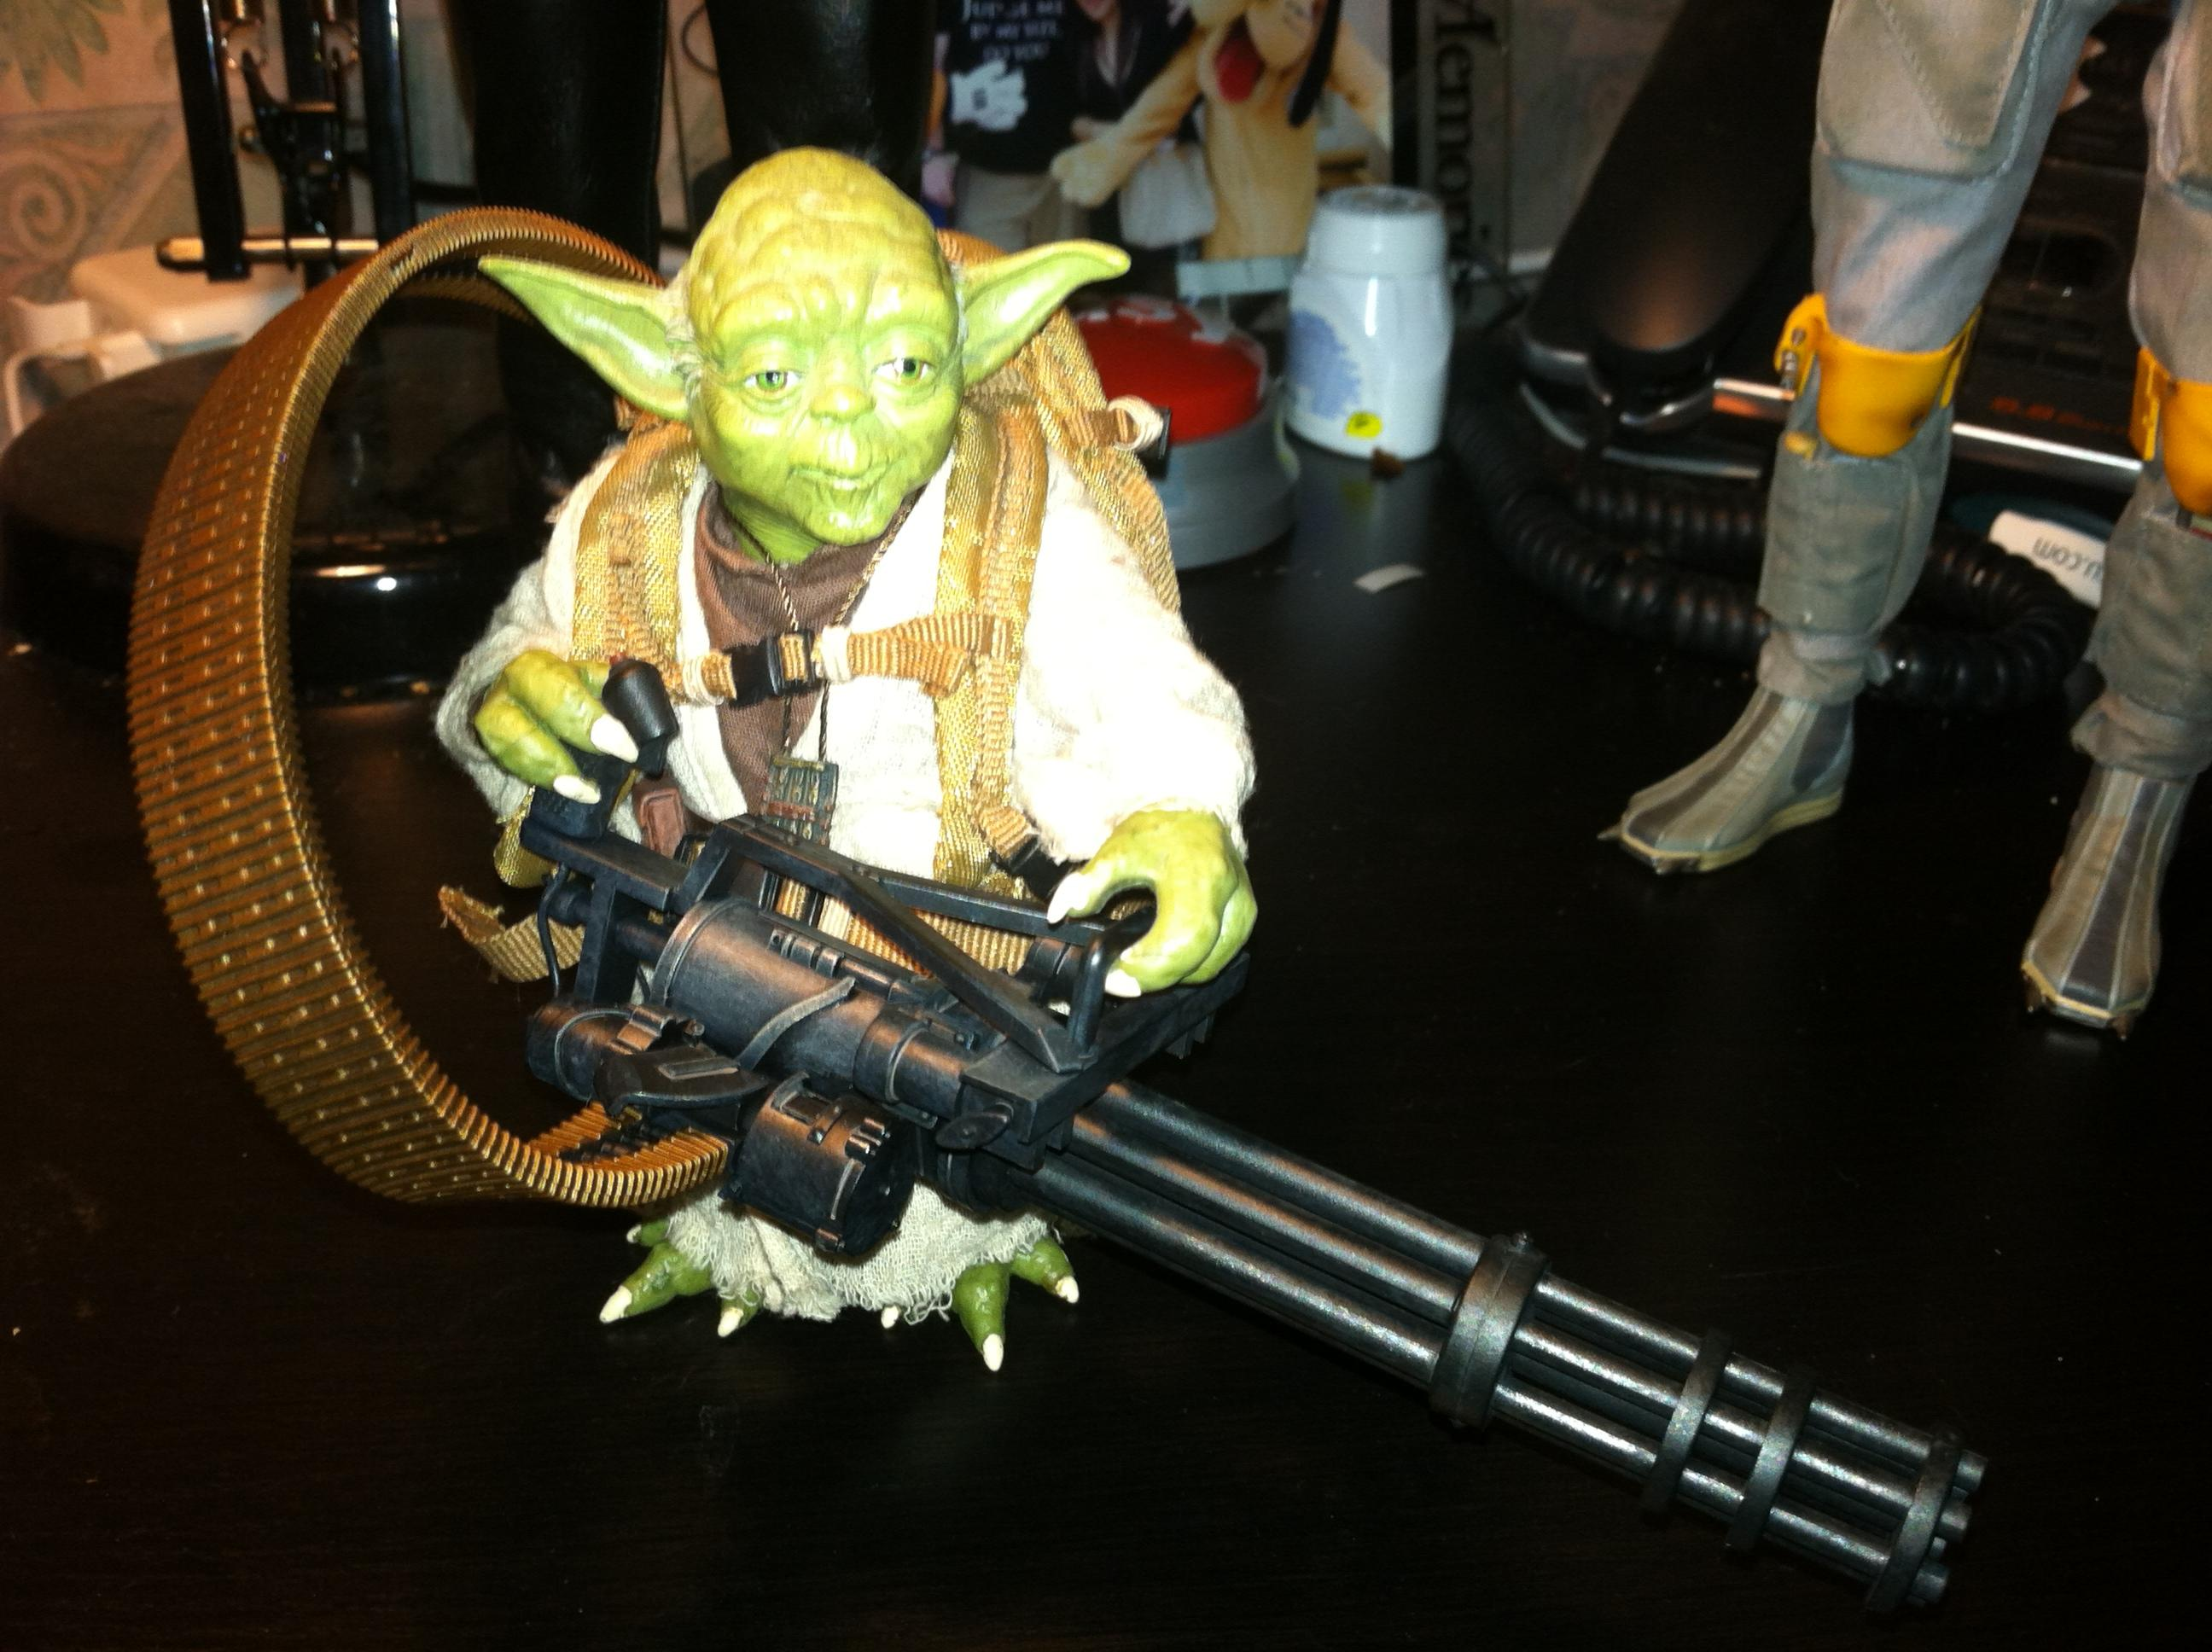 Yoda holding an unconventional weapon.